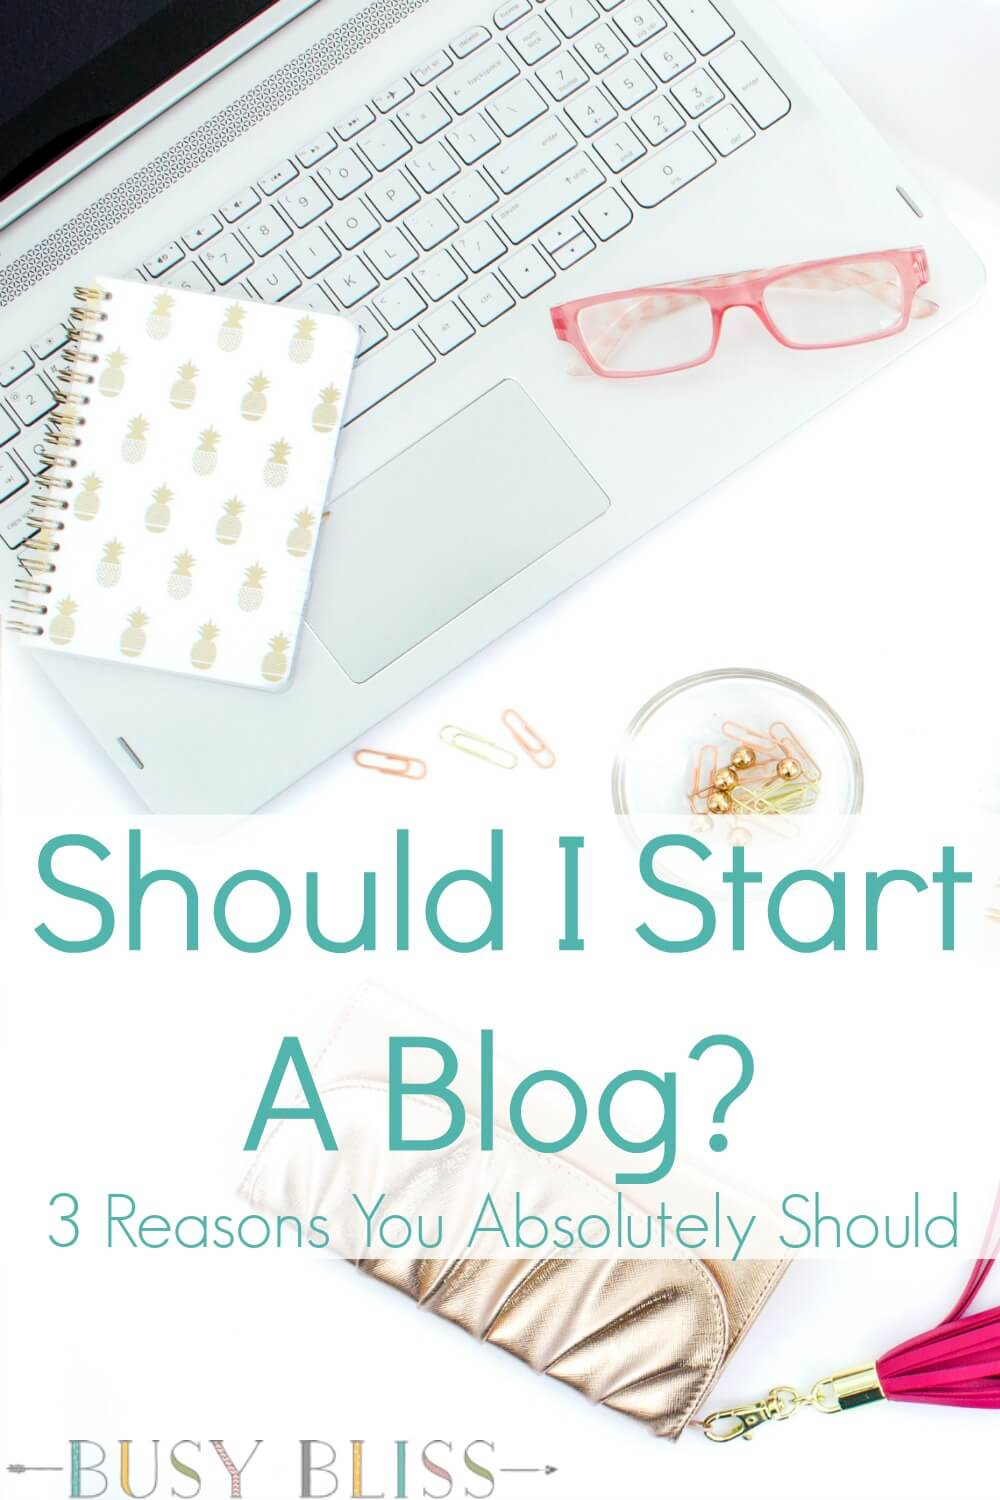 Should I start a blog? If you have been asking yourself this question, this post will give you 3 unexpected reasons why you absolutely should start a blog.